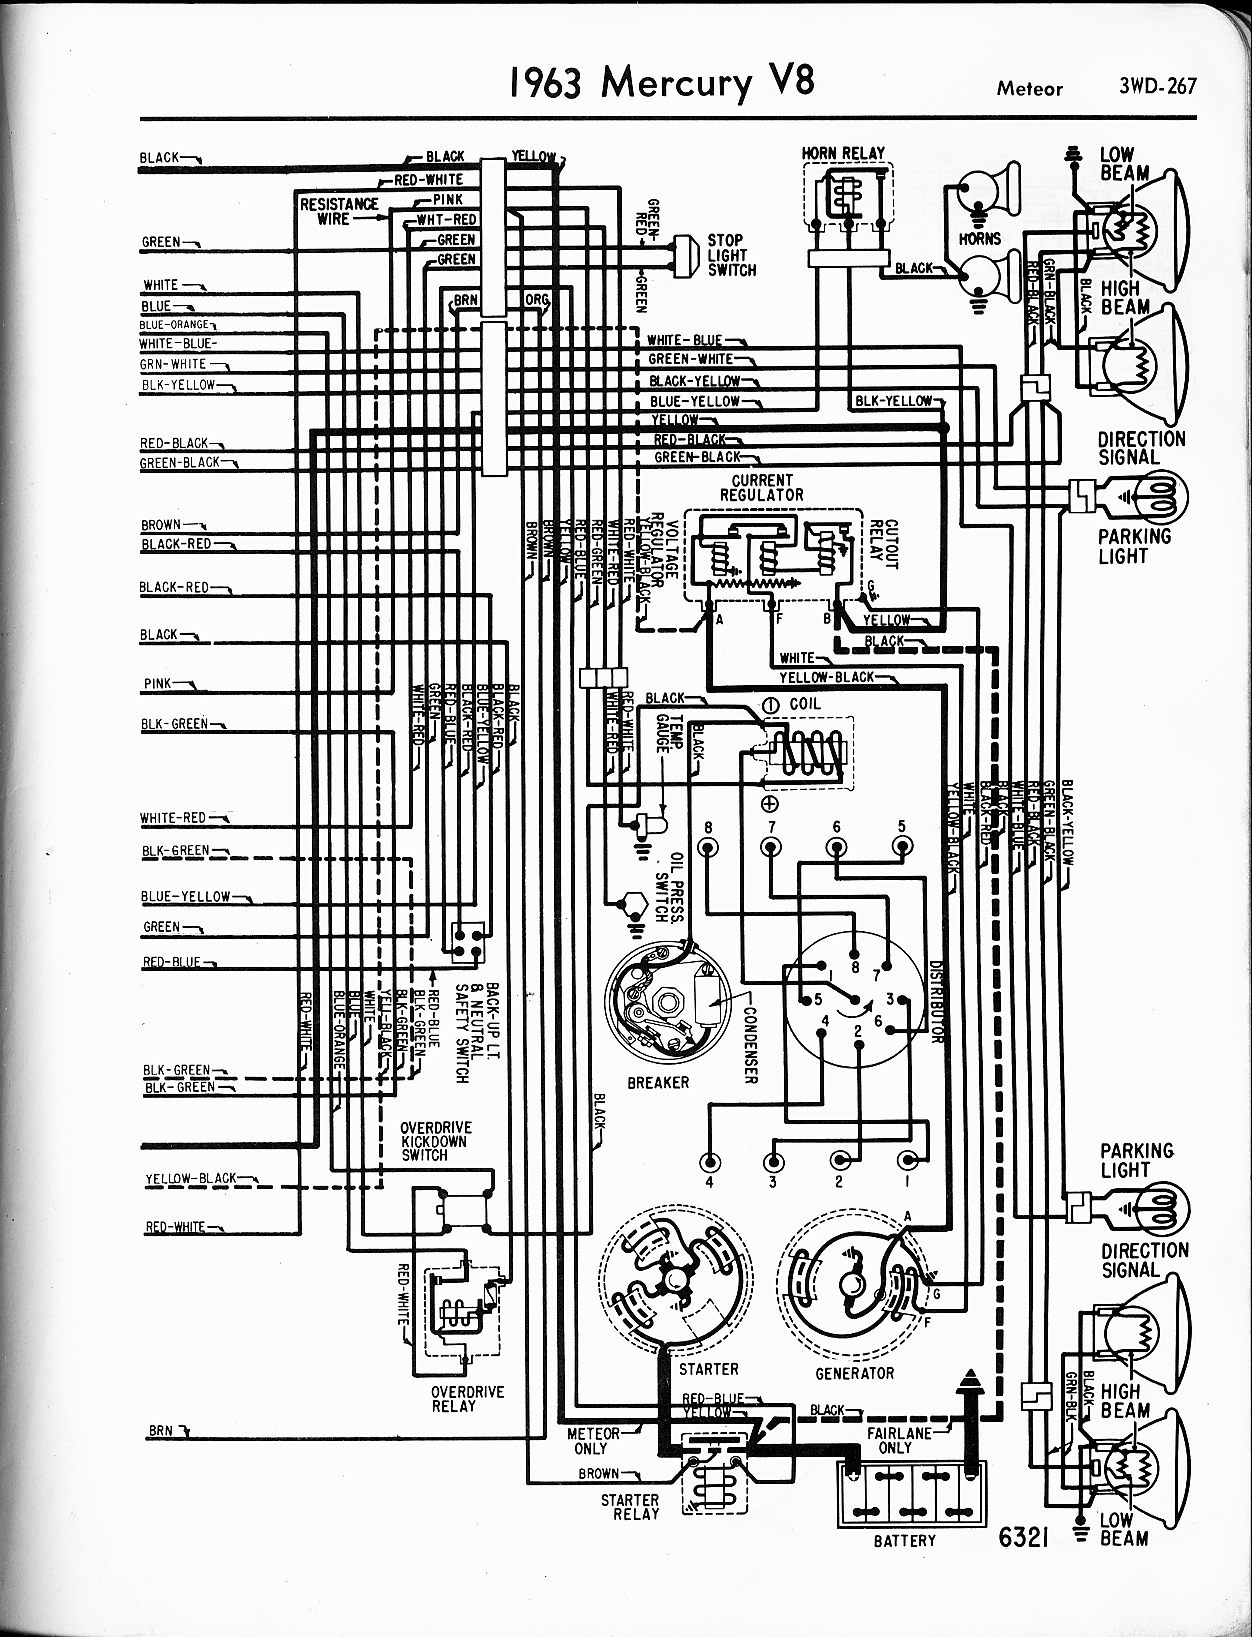 1963 mercury et wiring diagram basic guide wiring diagram u2022 rh needpixies